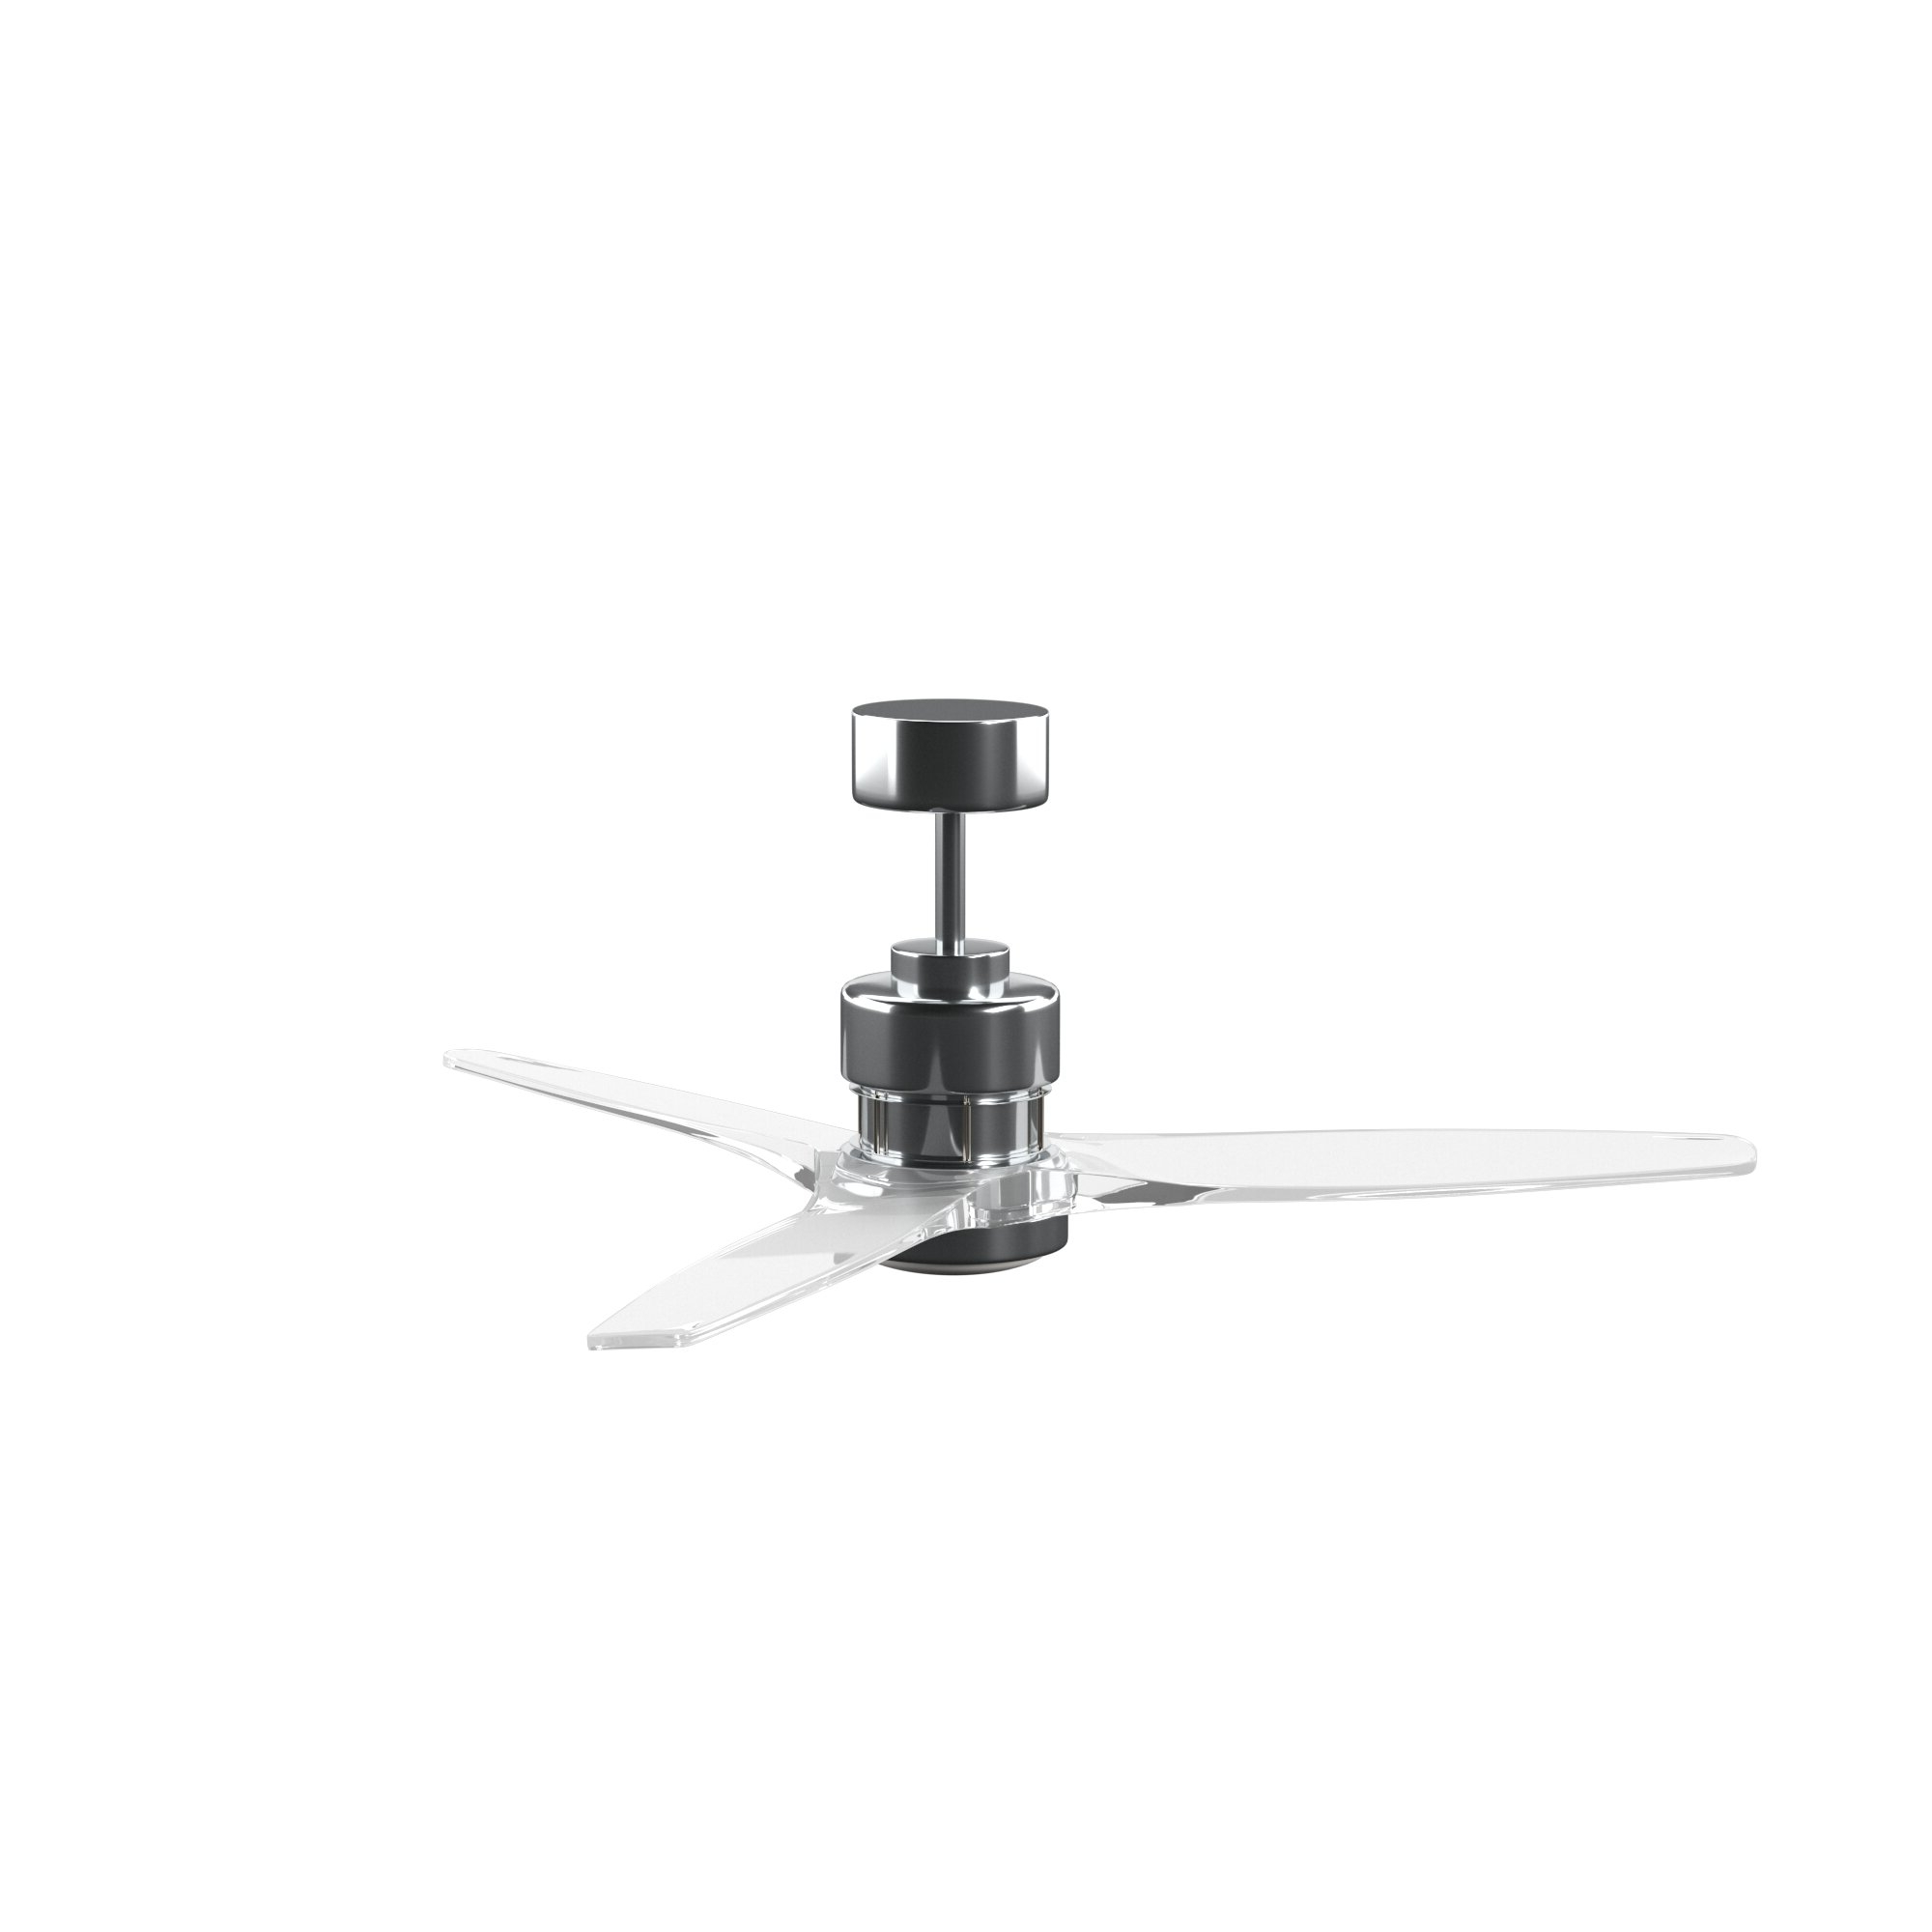 "Fashionable Emil 3 Blade Ceiling Fans Inside 52"" Mcdaniels 3 Blade Led Ceiling Fan With Remote, Light Kit Included (View 11 of 20)"